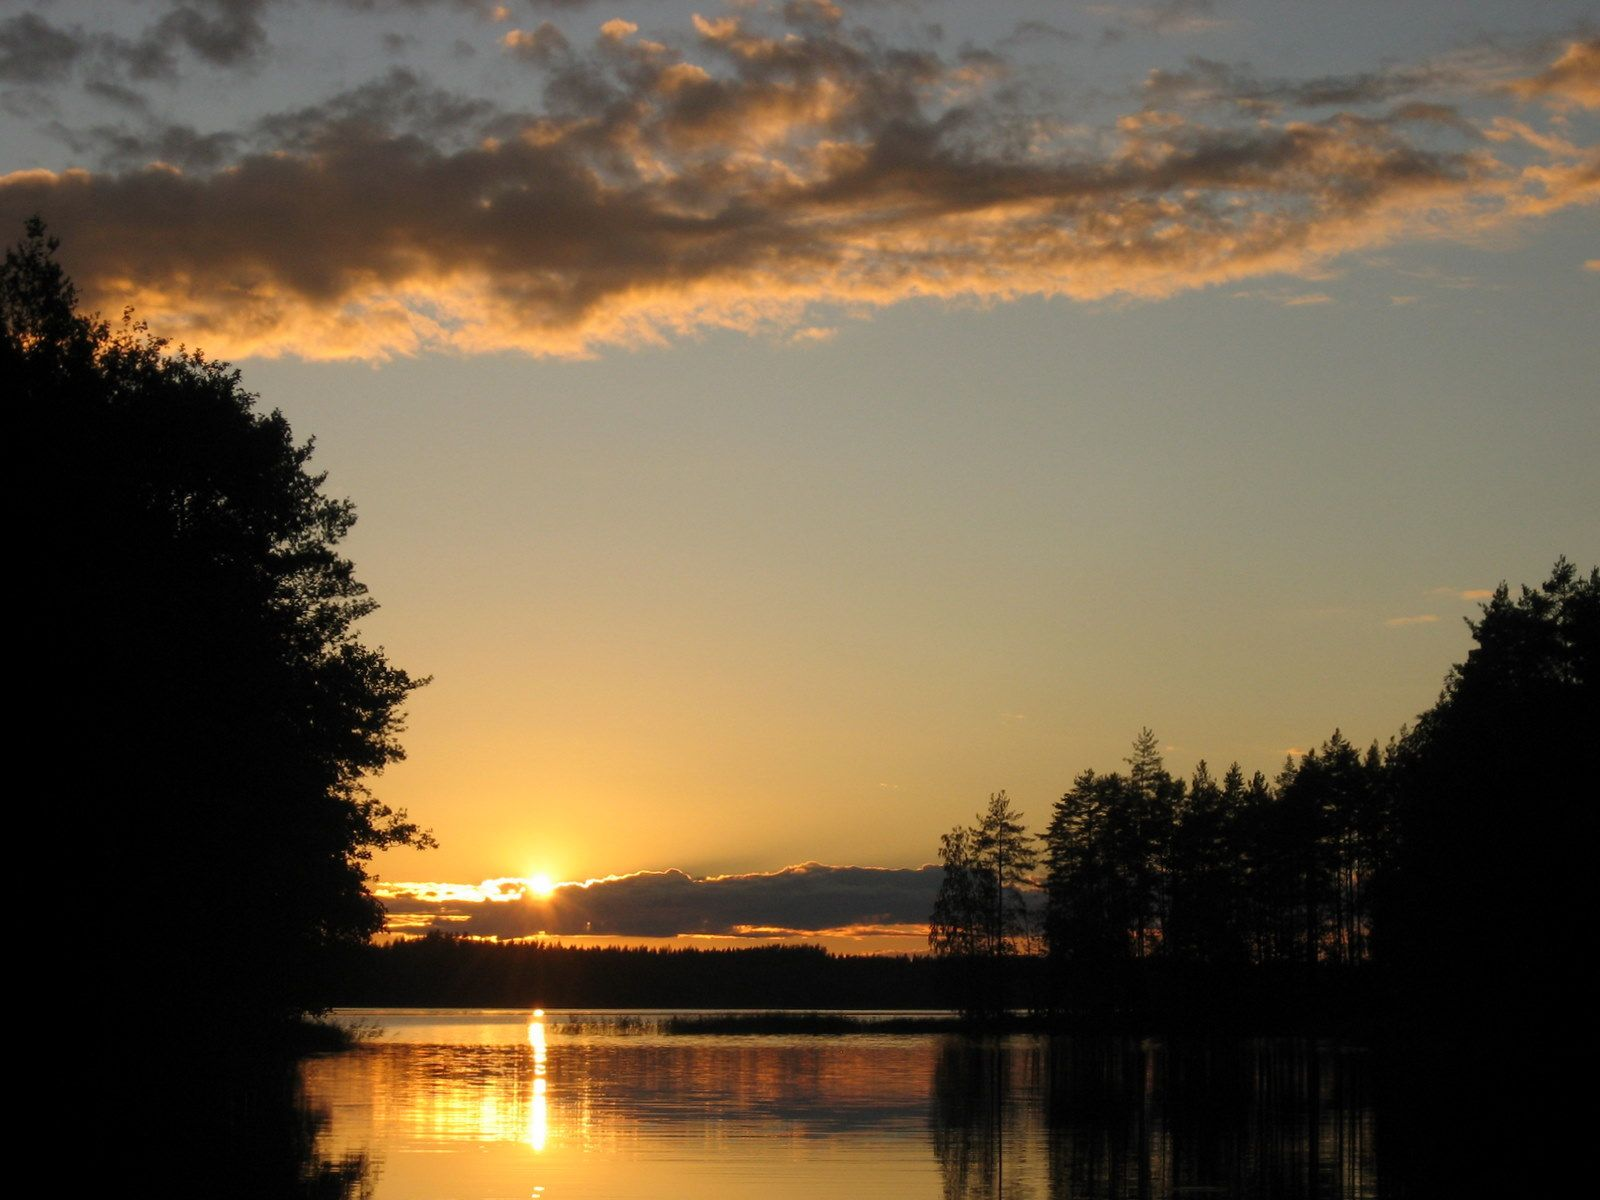 Gorgeous_sunset_at_Äyrätsalo_-_panoramio.jpg (1600×1200)